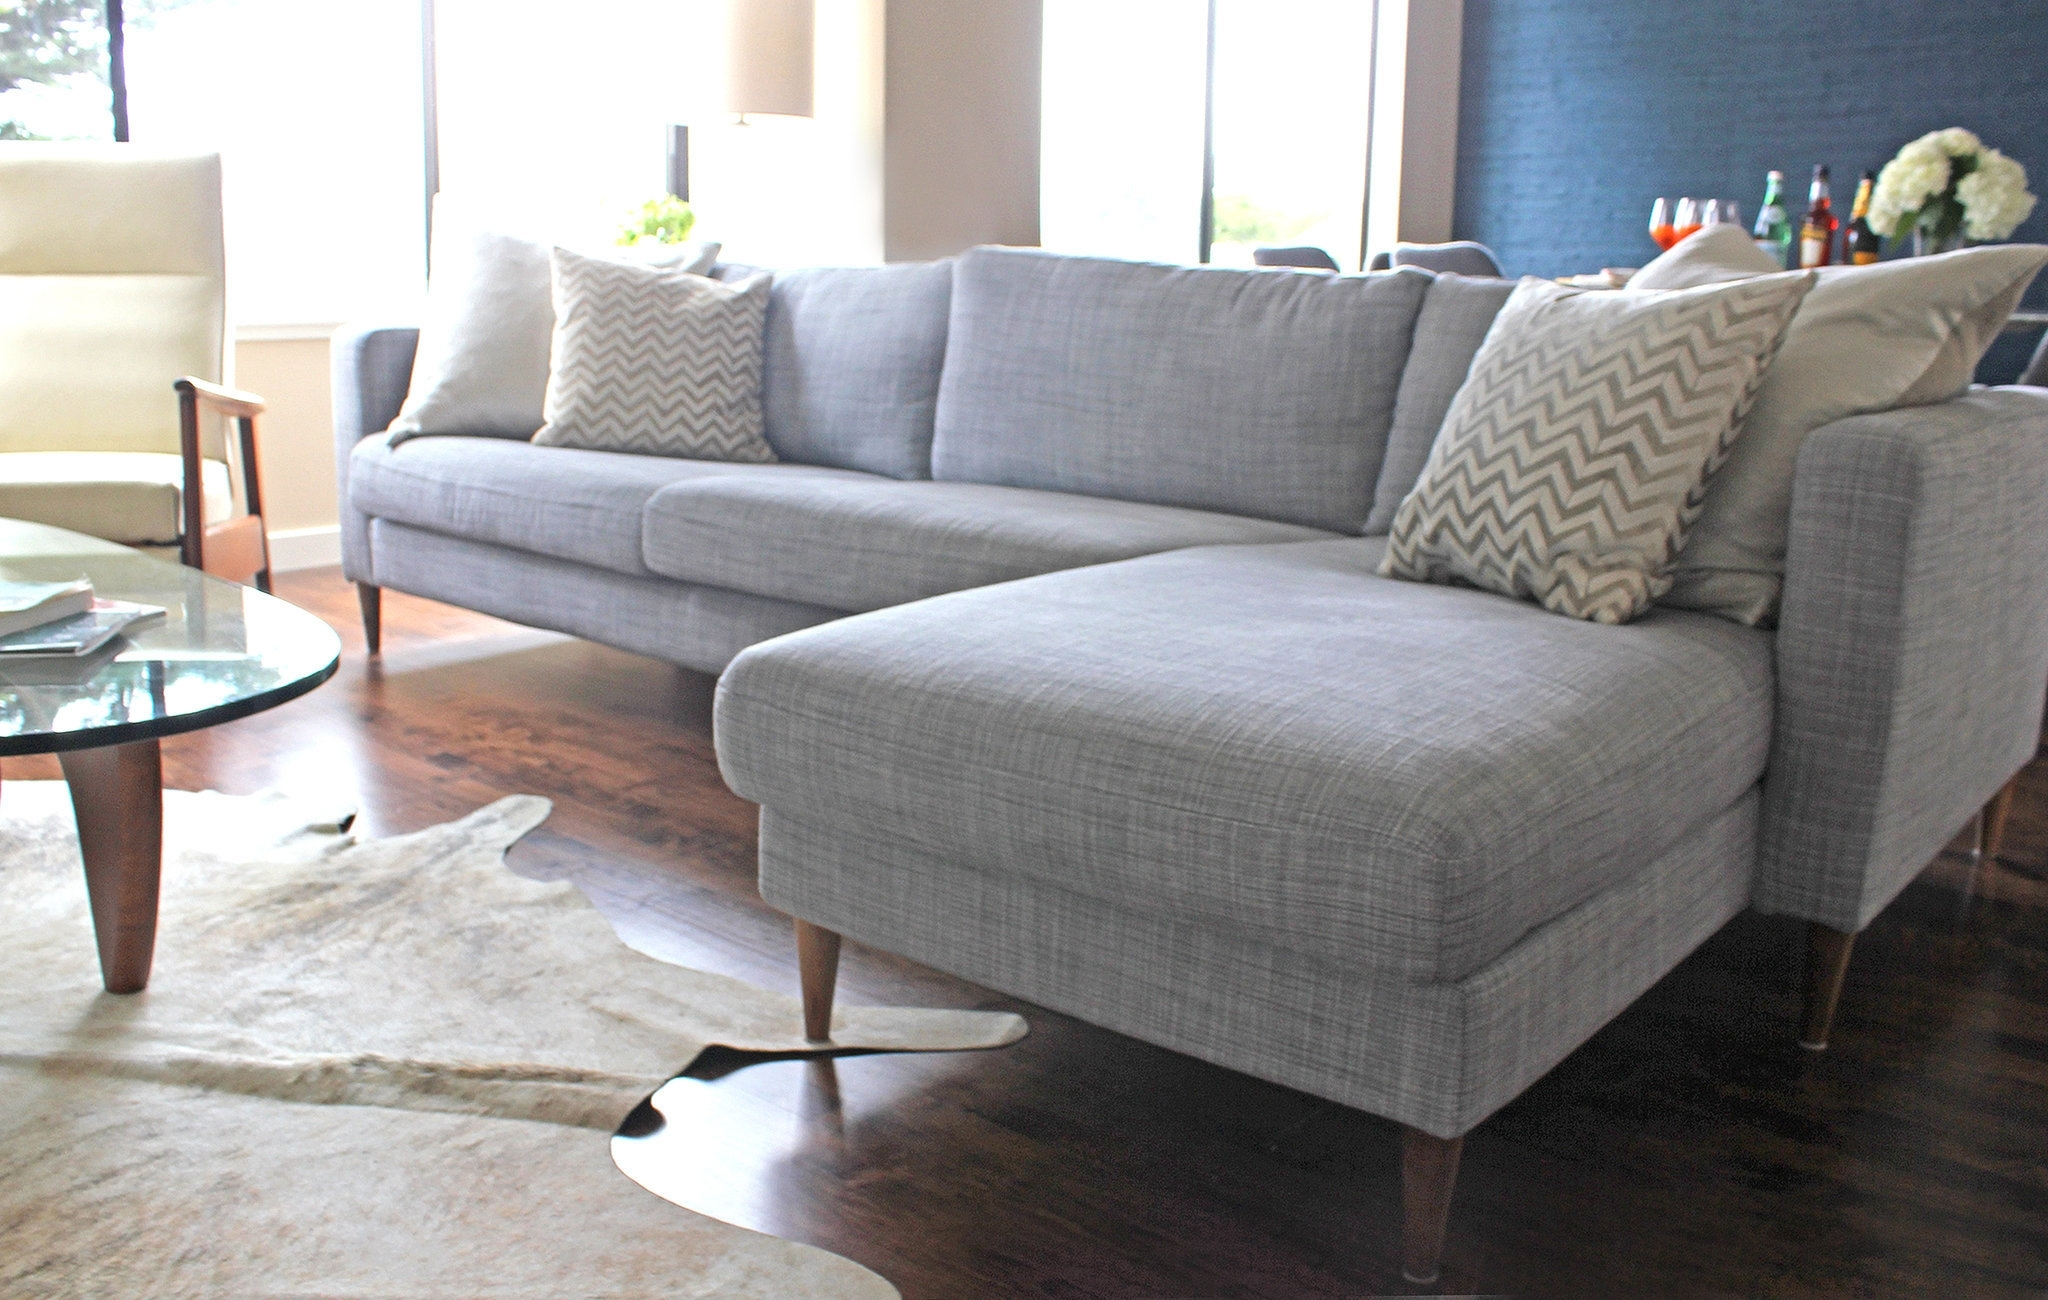 Karlstad Chaises Pertaining To Well Liked Stunning Ikea Karlstad Sofa For Dress Up An Ikea Sofareplacing (Gallery 3 of 15)